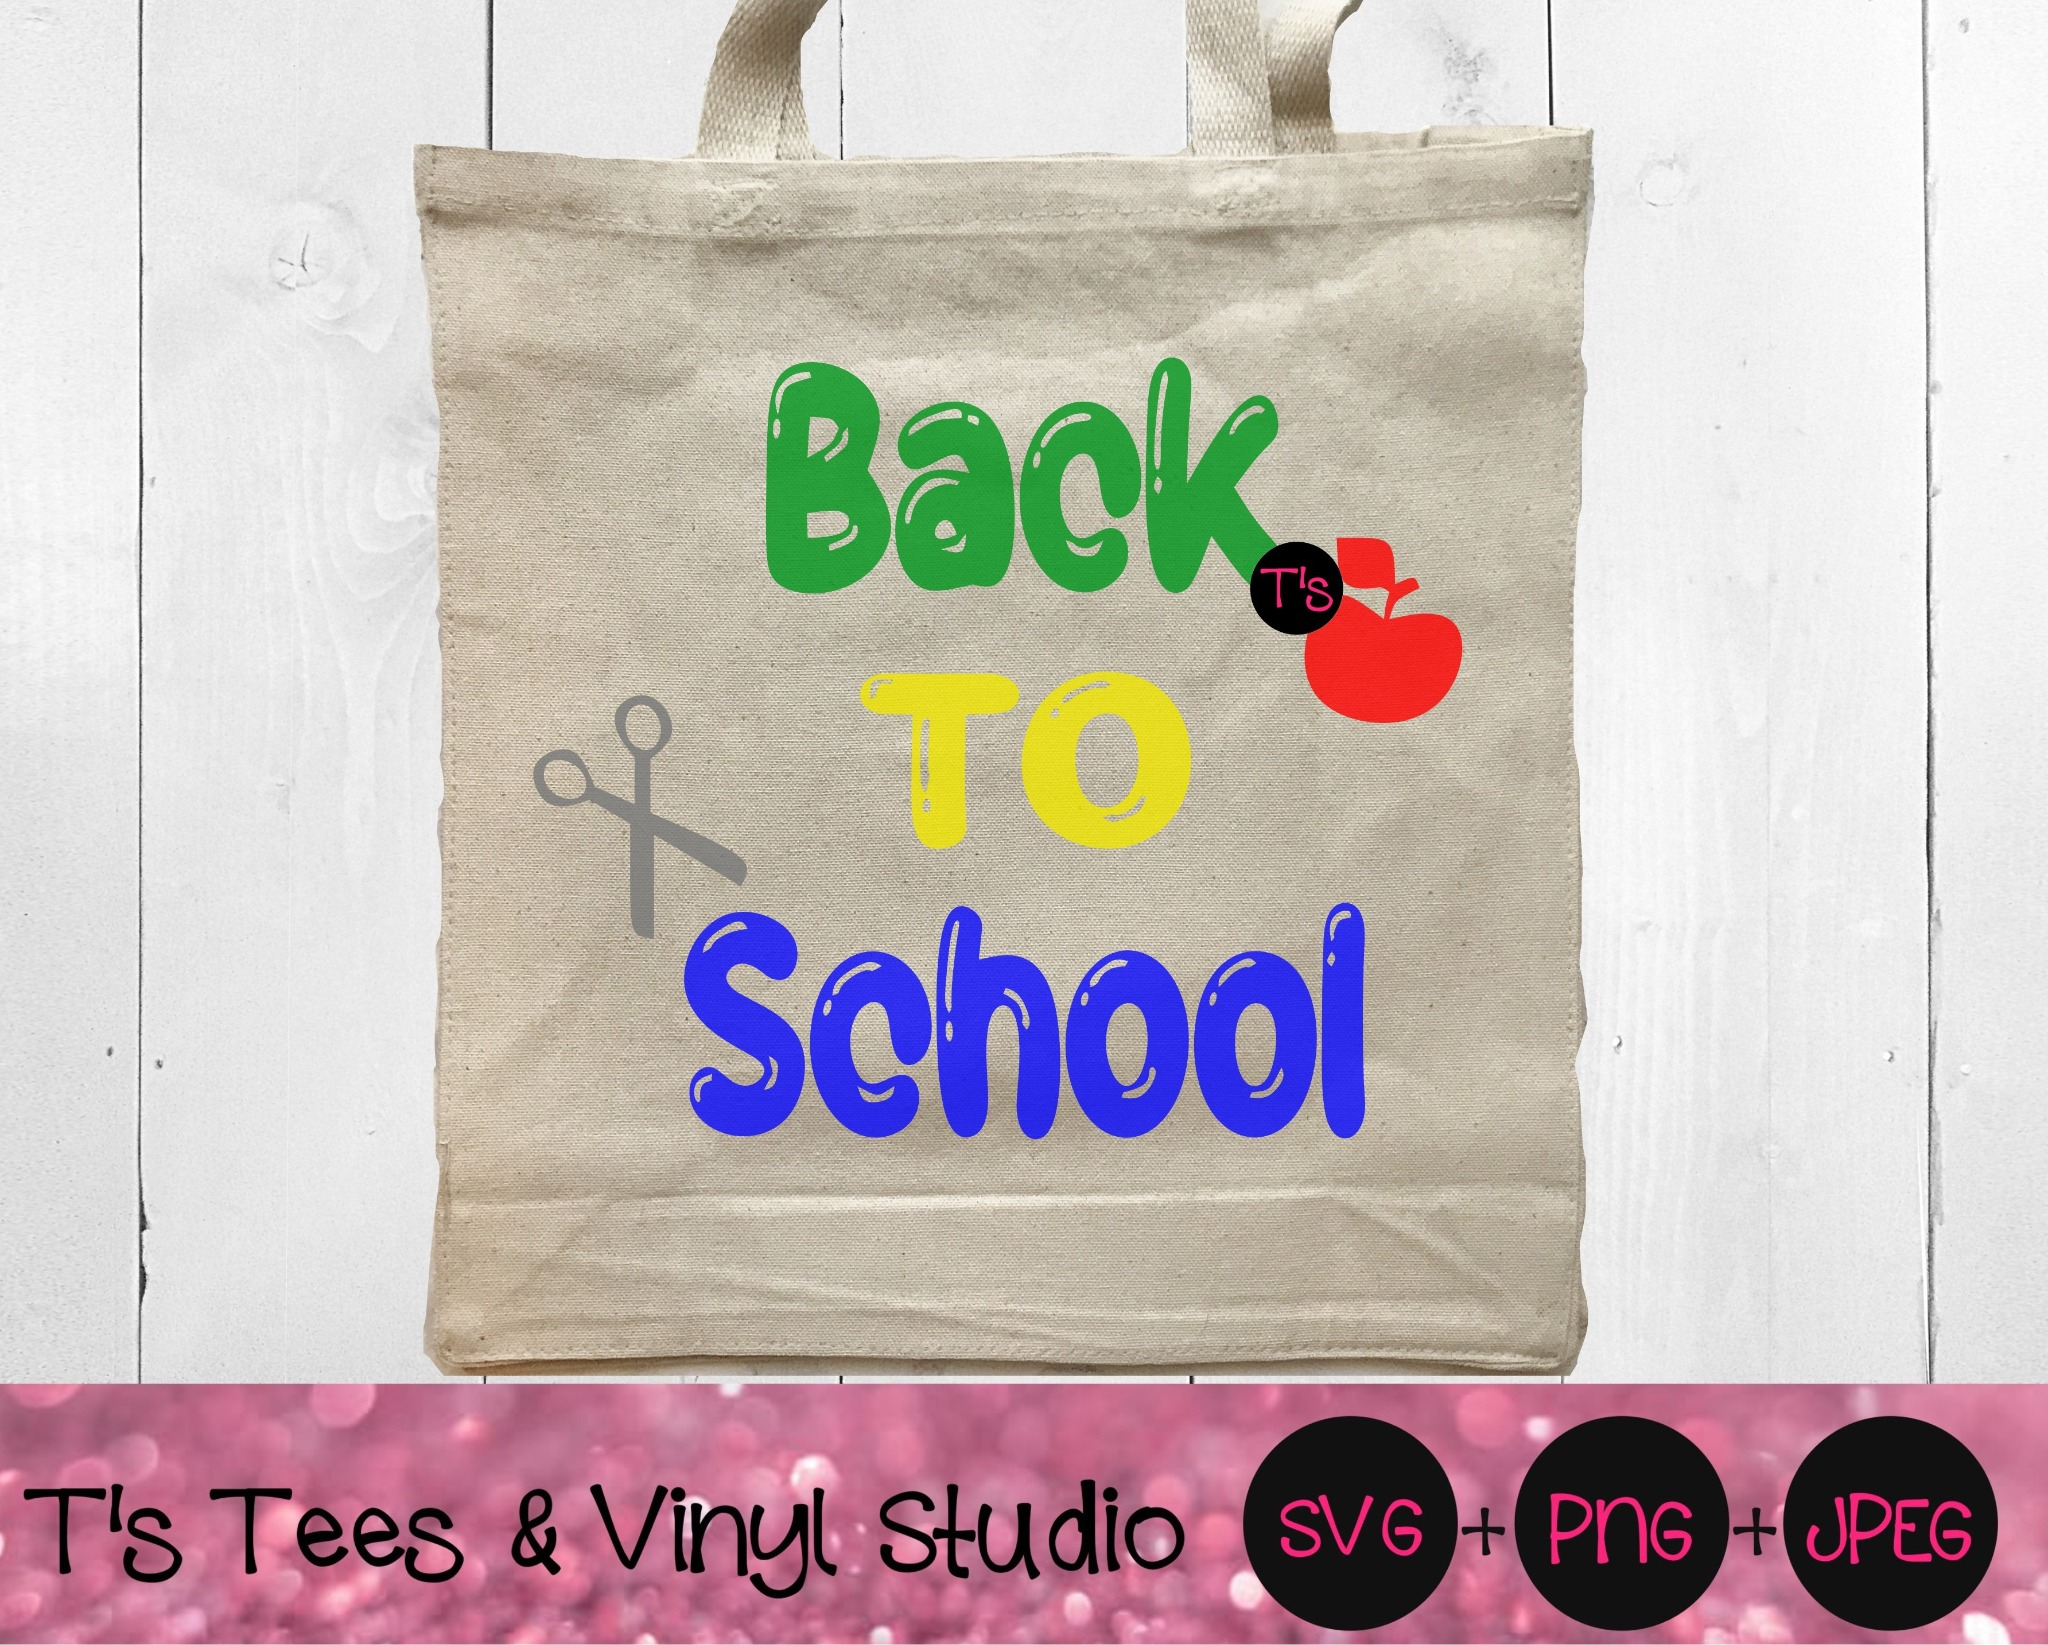 Back To School Svg, School Svg, Learn Svg, Time To Learn Svg, New School Year Svg, First Day